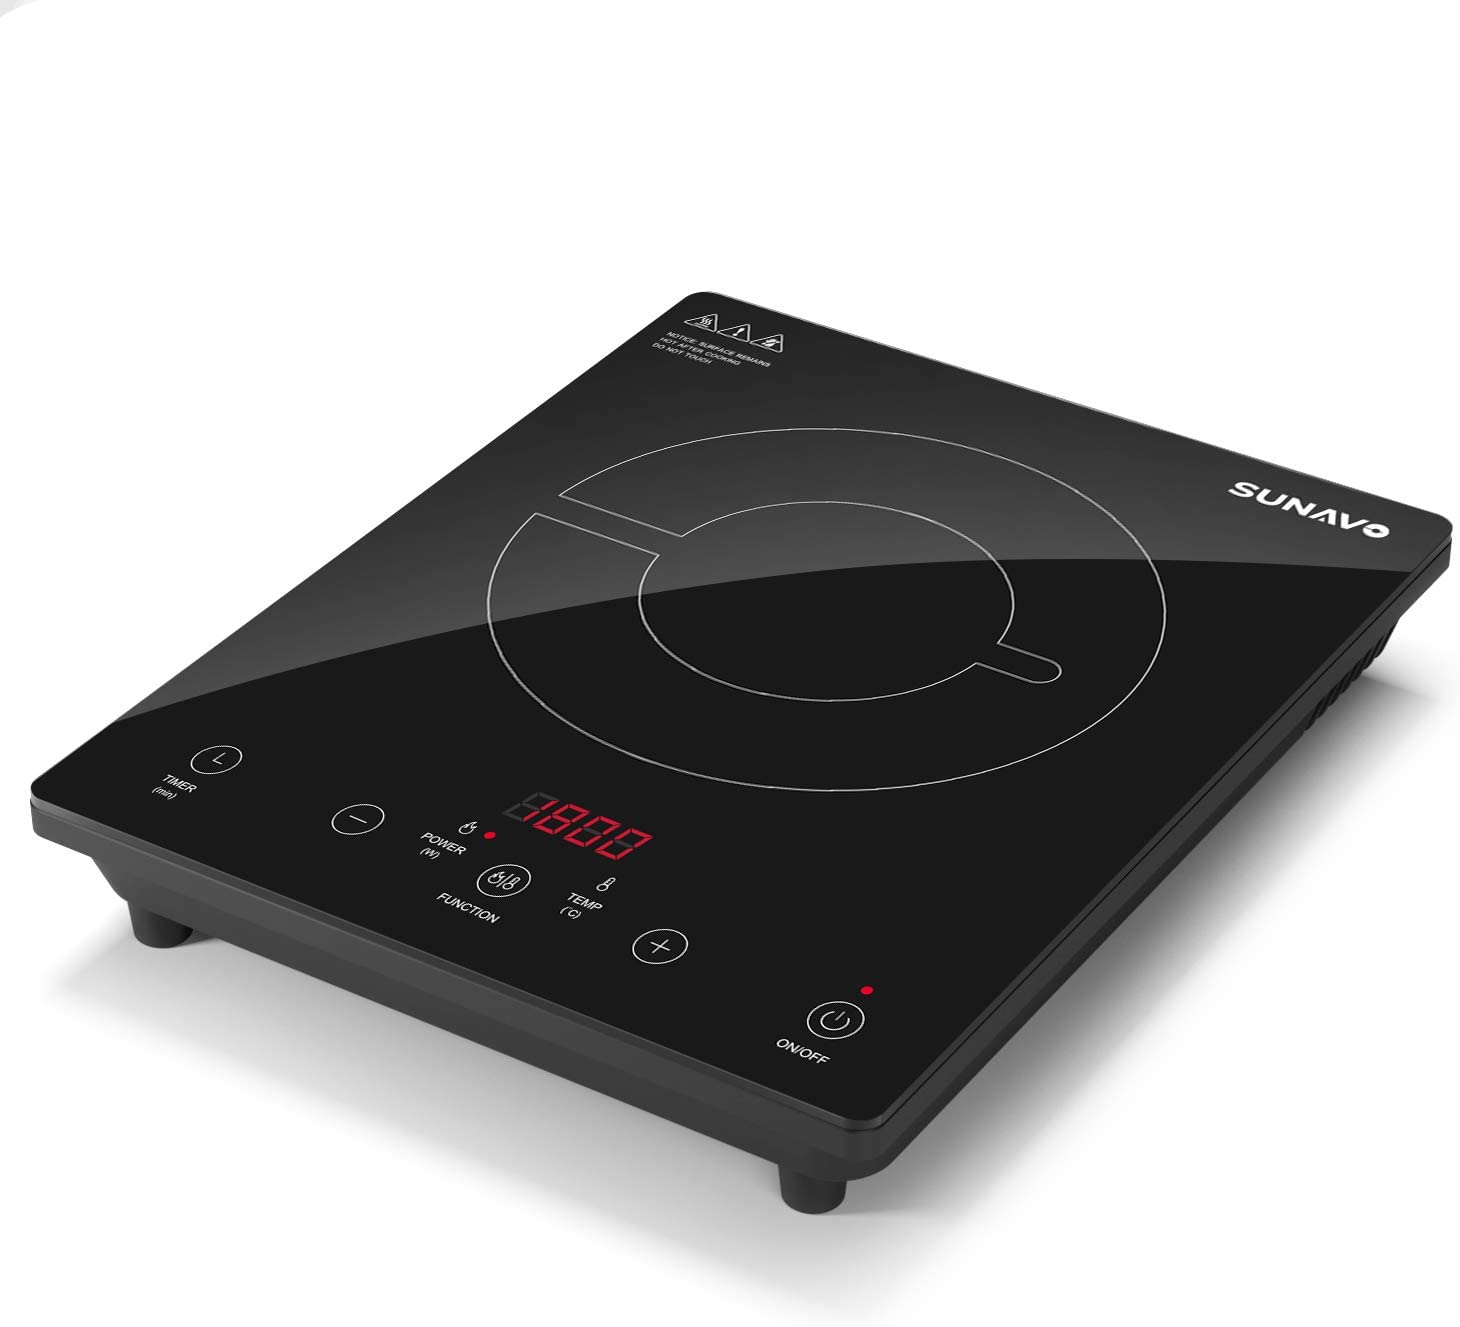 SUNAVO Portable Induction Cooktop, 1800W Sensor Touch Induction Burner with Kids Safety Lock, 15 Temperature Power Setting Countertop Burner with Timer